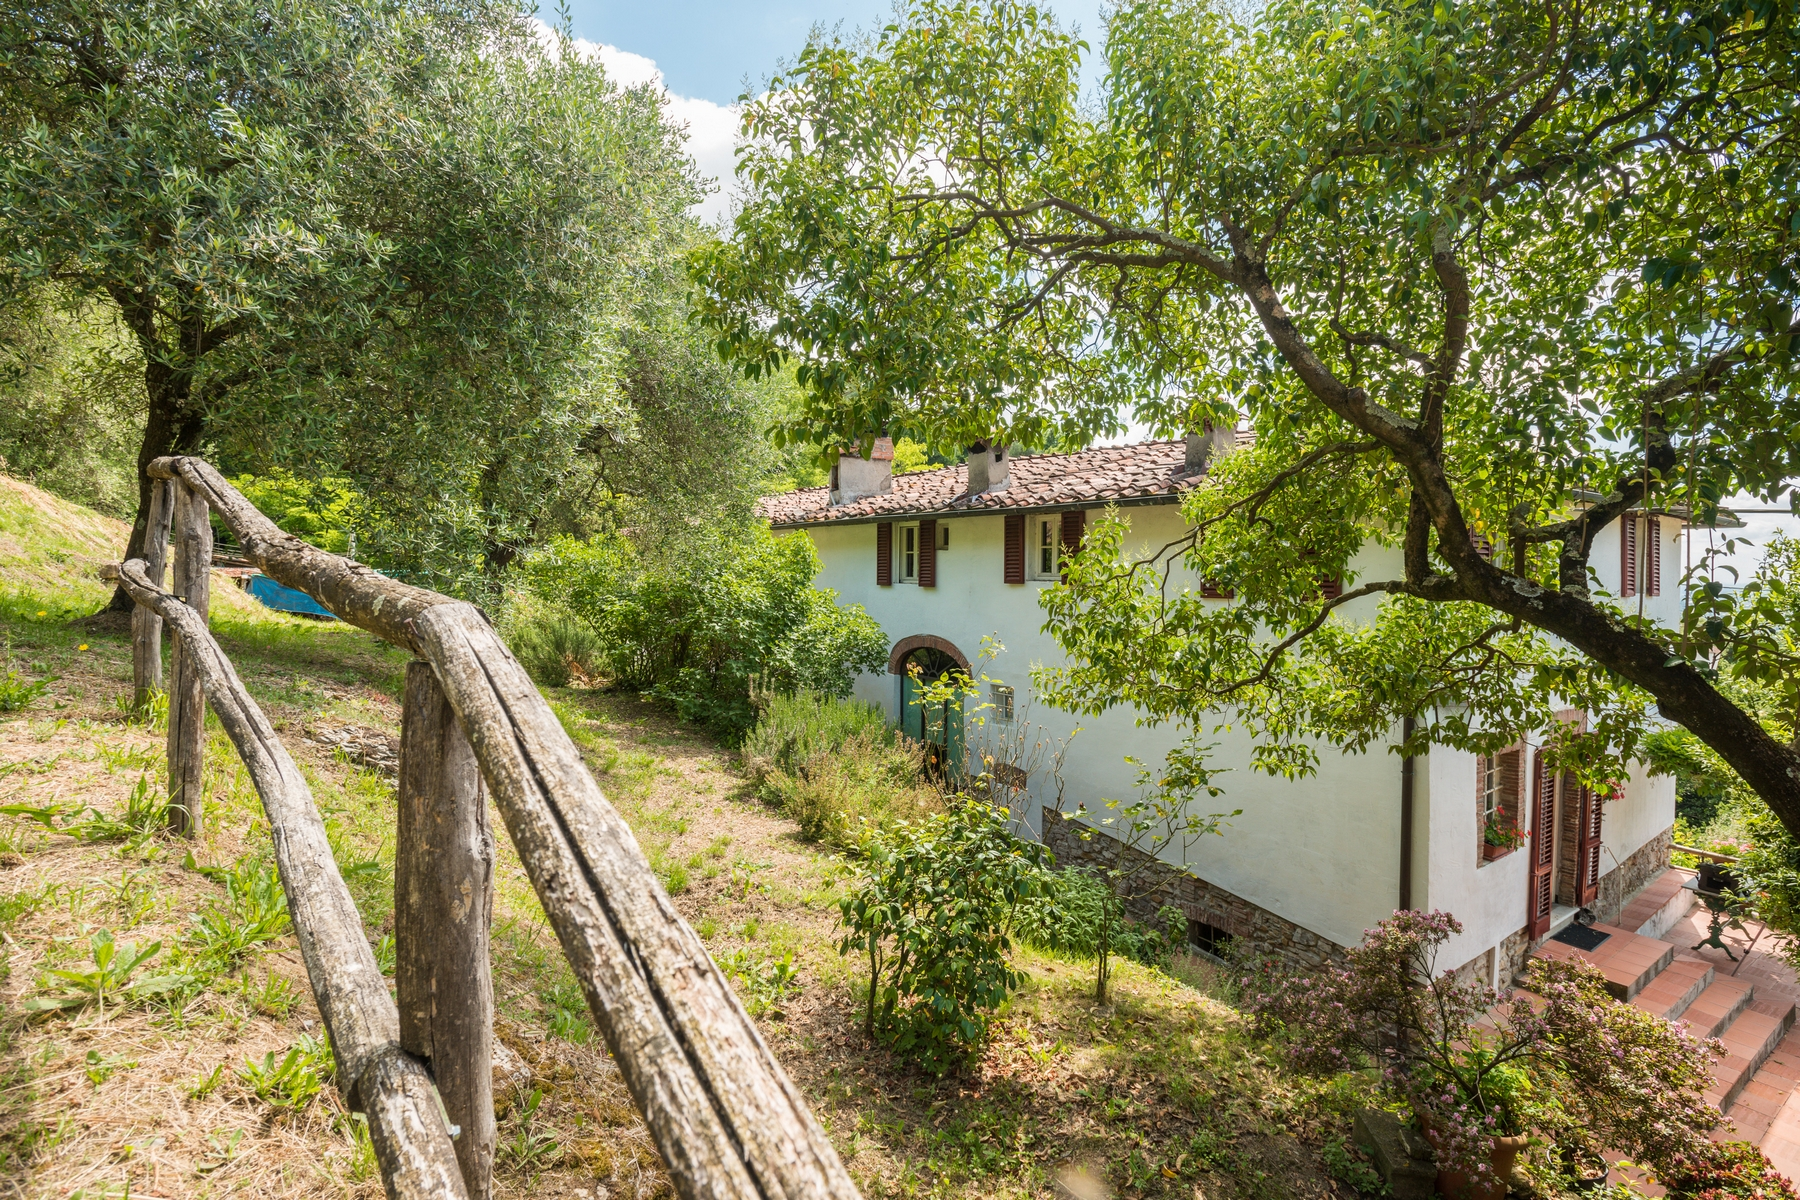 Additional photo for property listing at Country home near Lucca San Concordio di Moriano Lucca, Lucca 55100 Italien